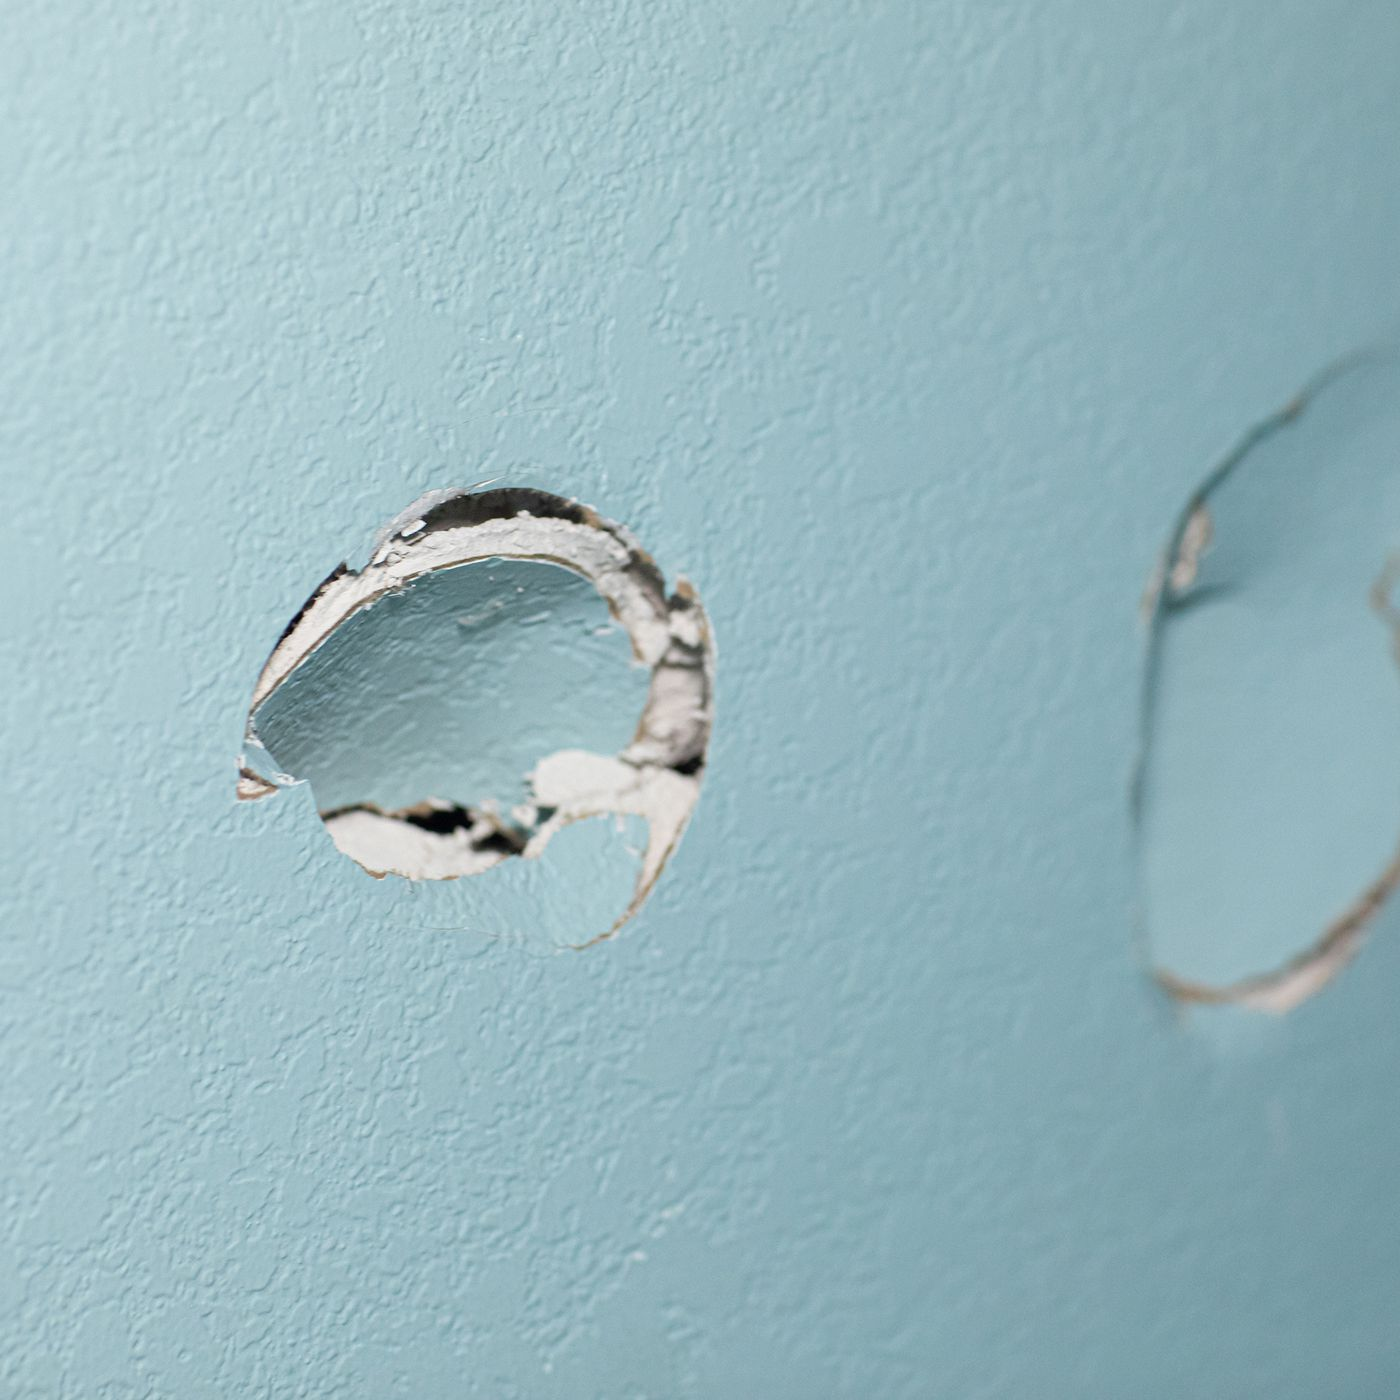 How To Fix A Hole In The Wall This Old House